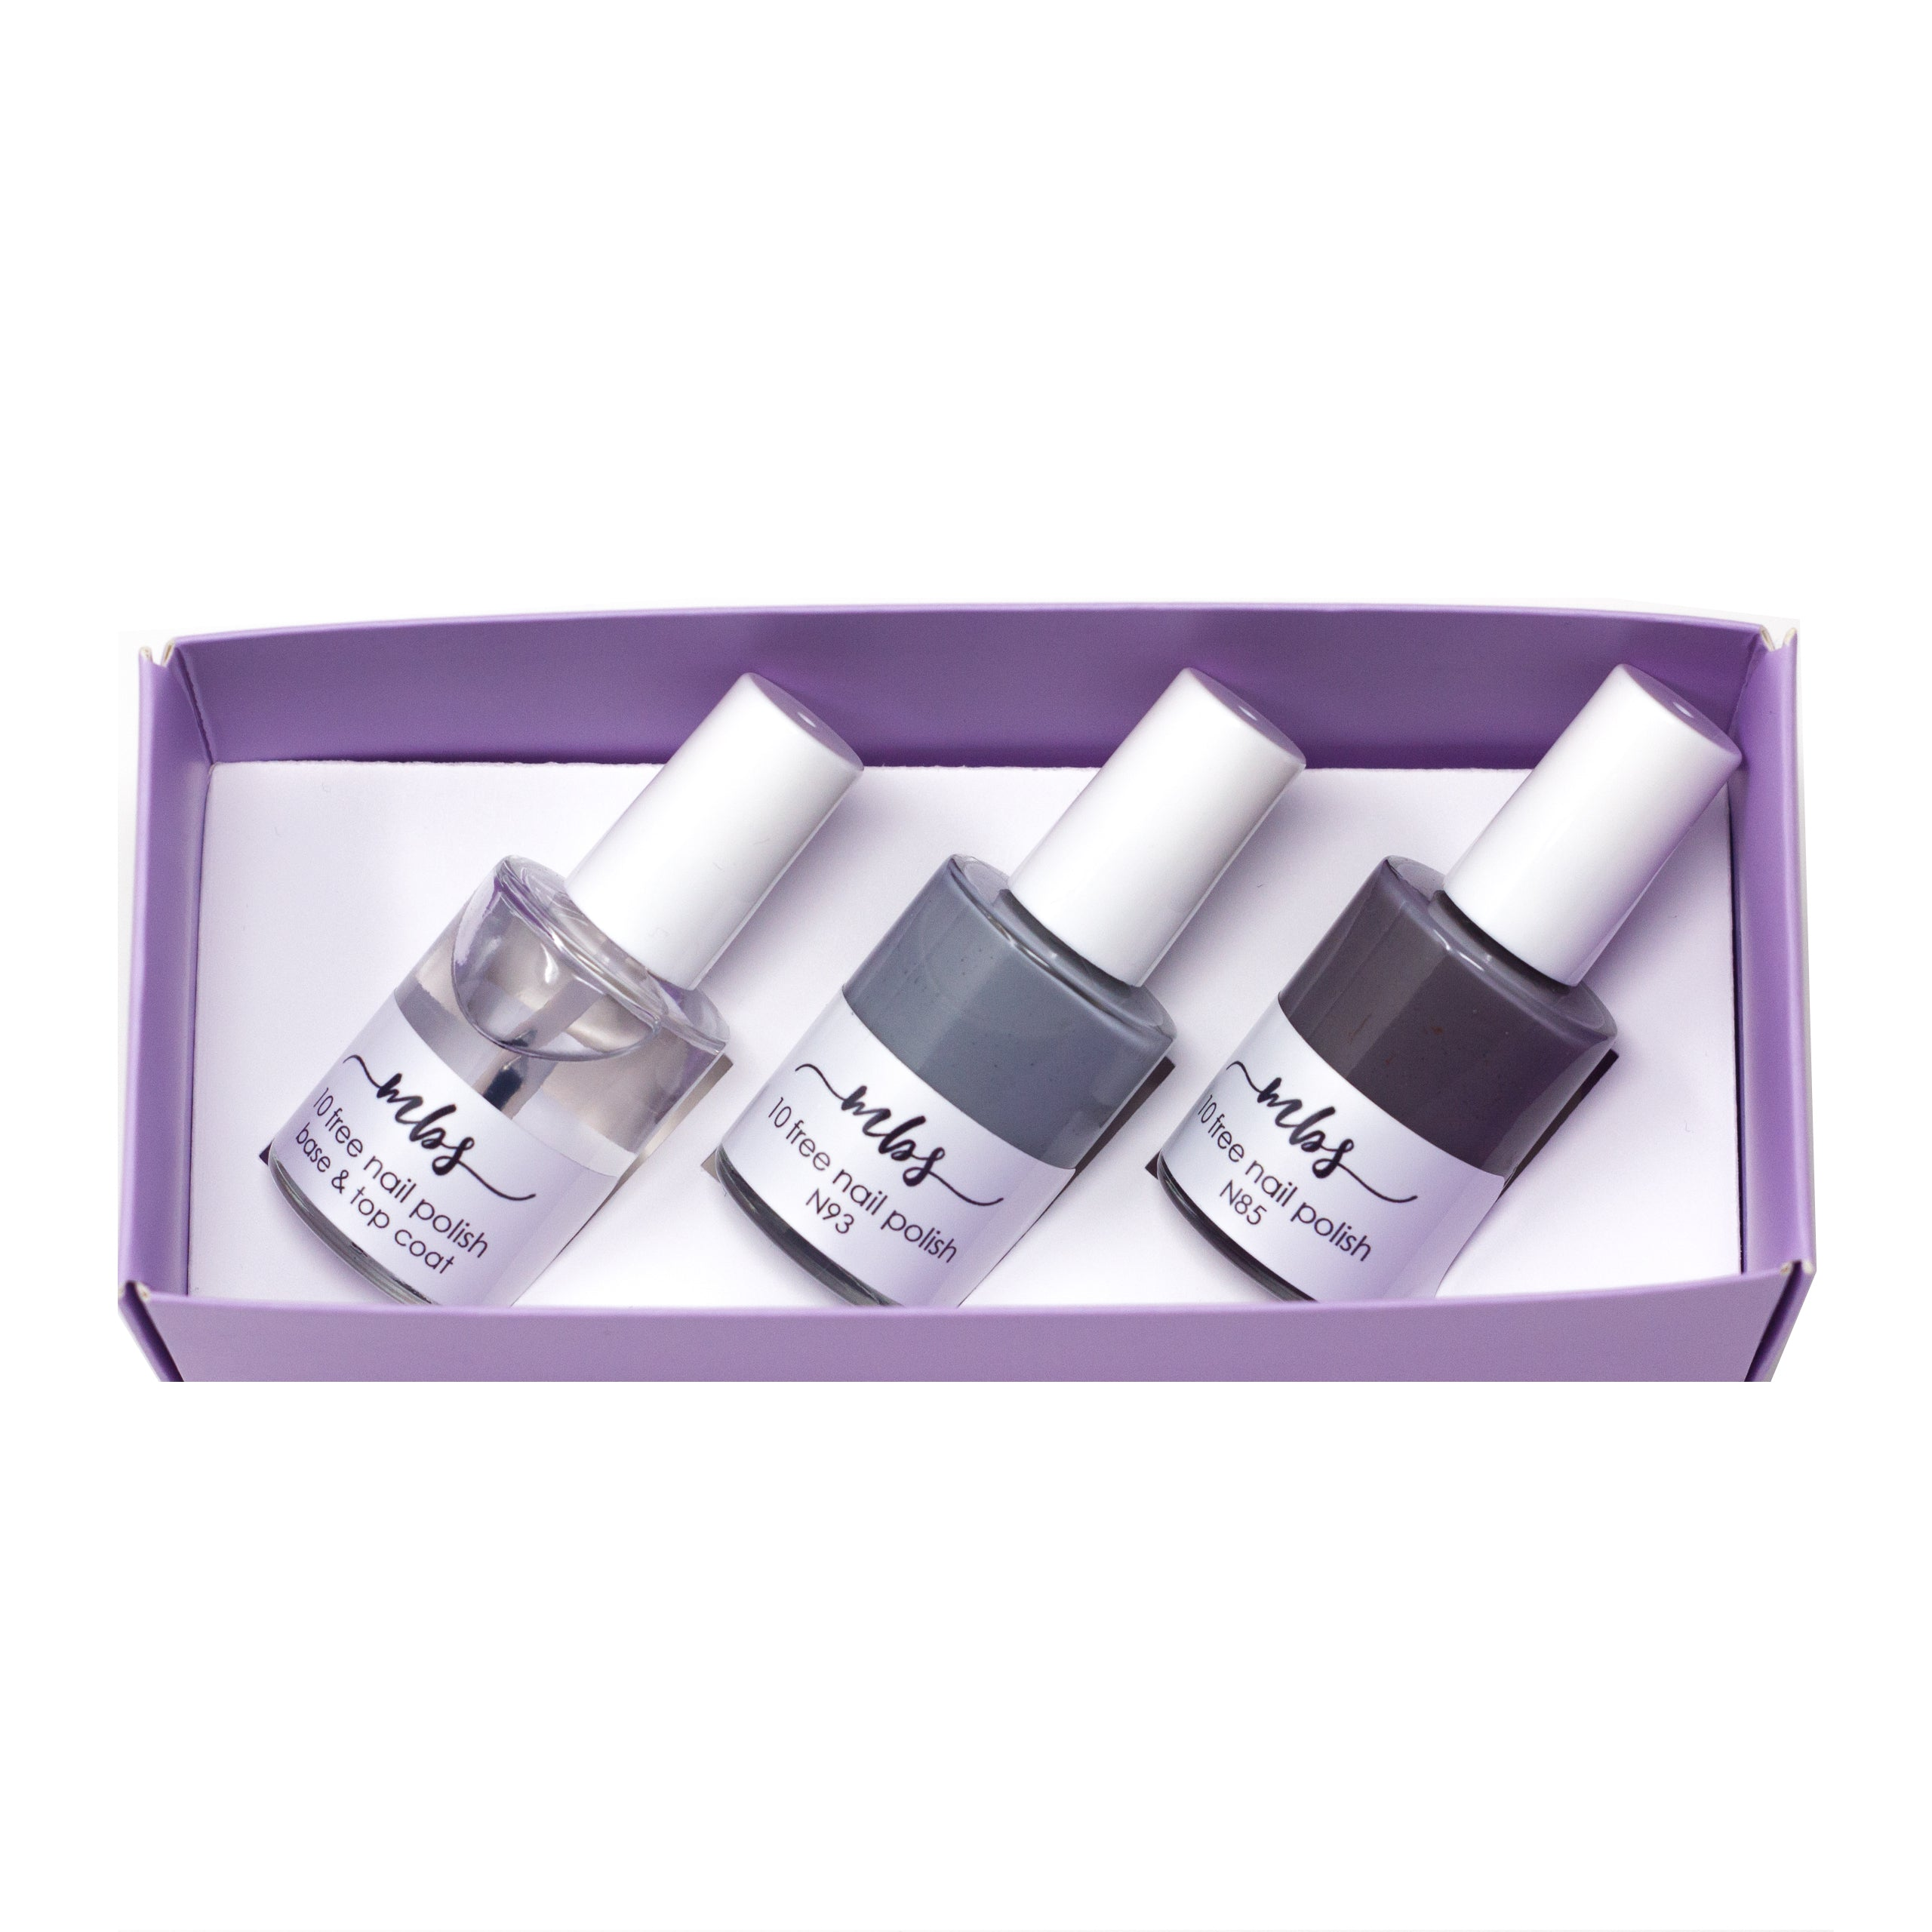 Nail Polish Trio (N85 + N93 + Clear Coat)-Gifts-Morning Blossom Studio